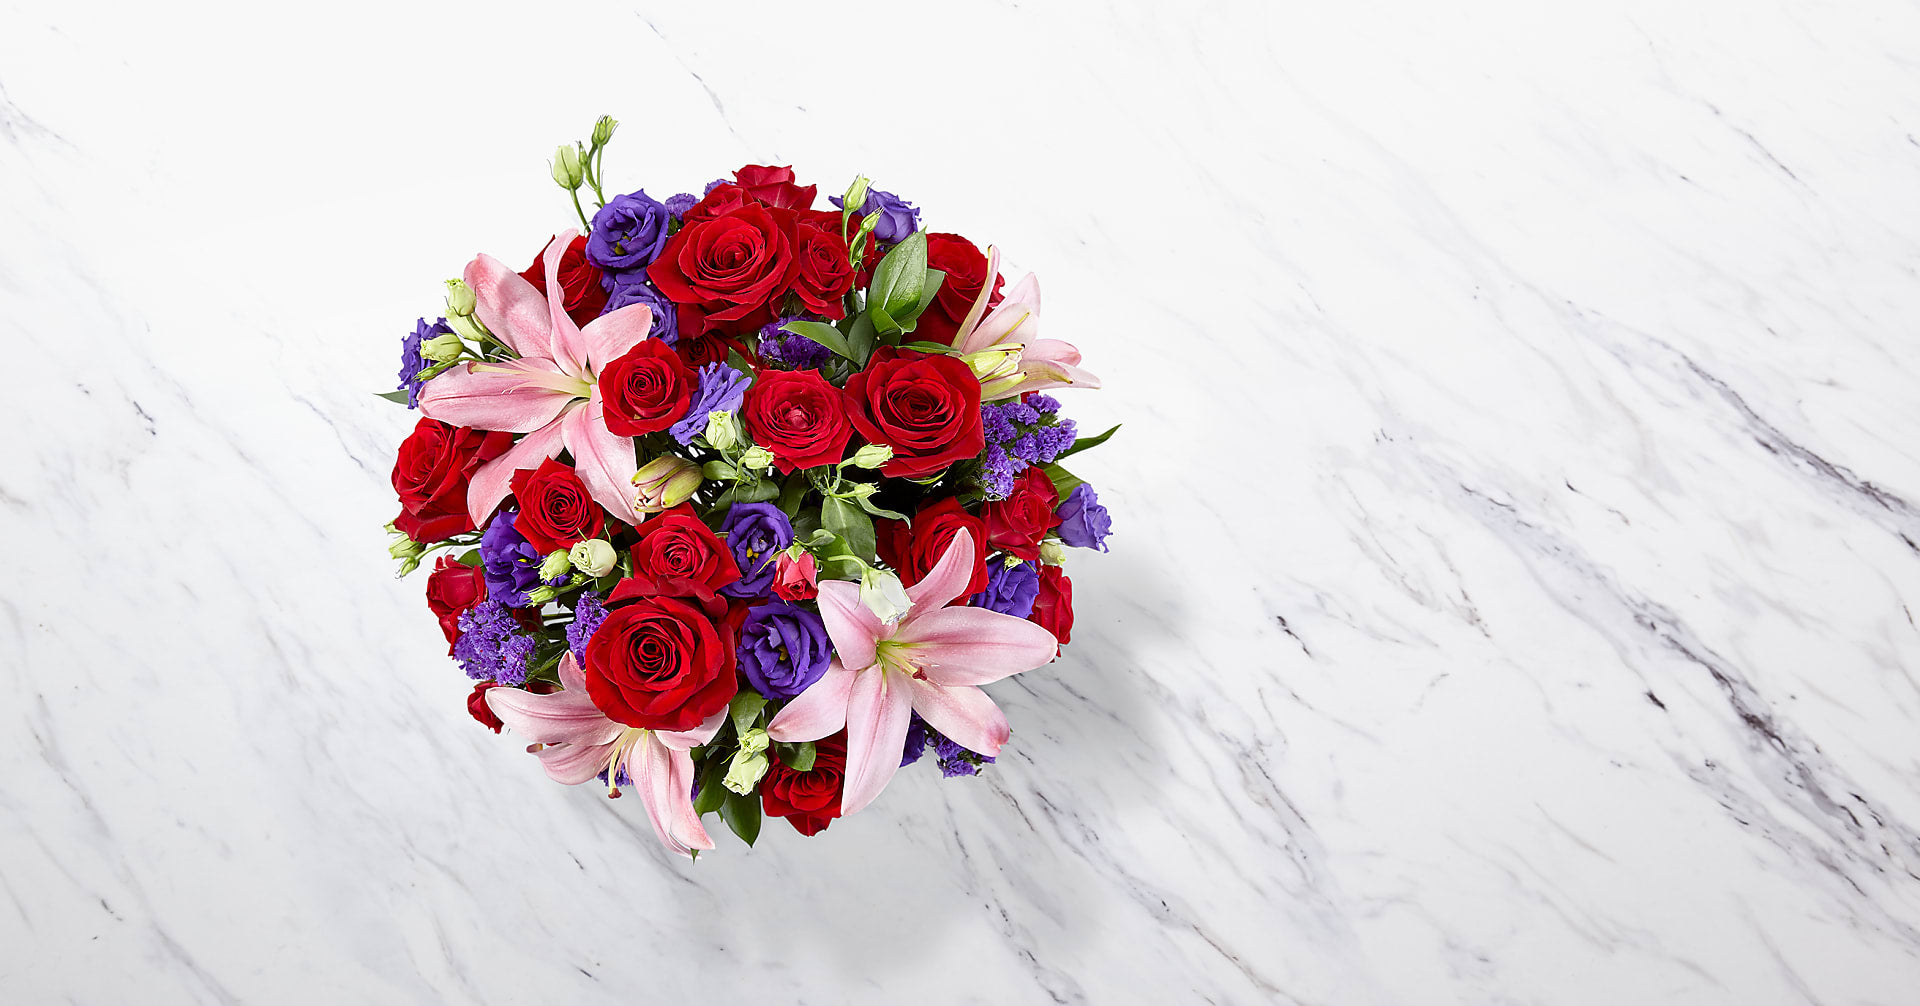 Truly Stunning Bouquet - Image 2 Of 4